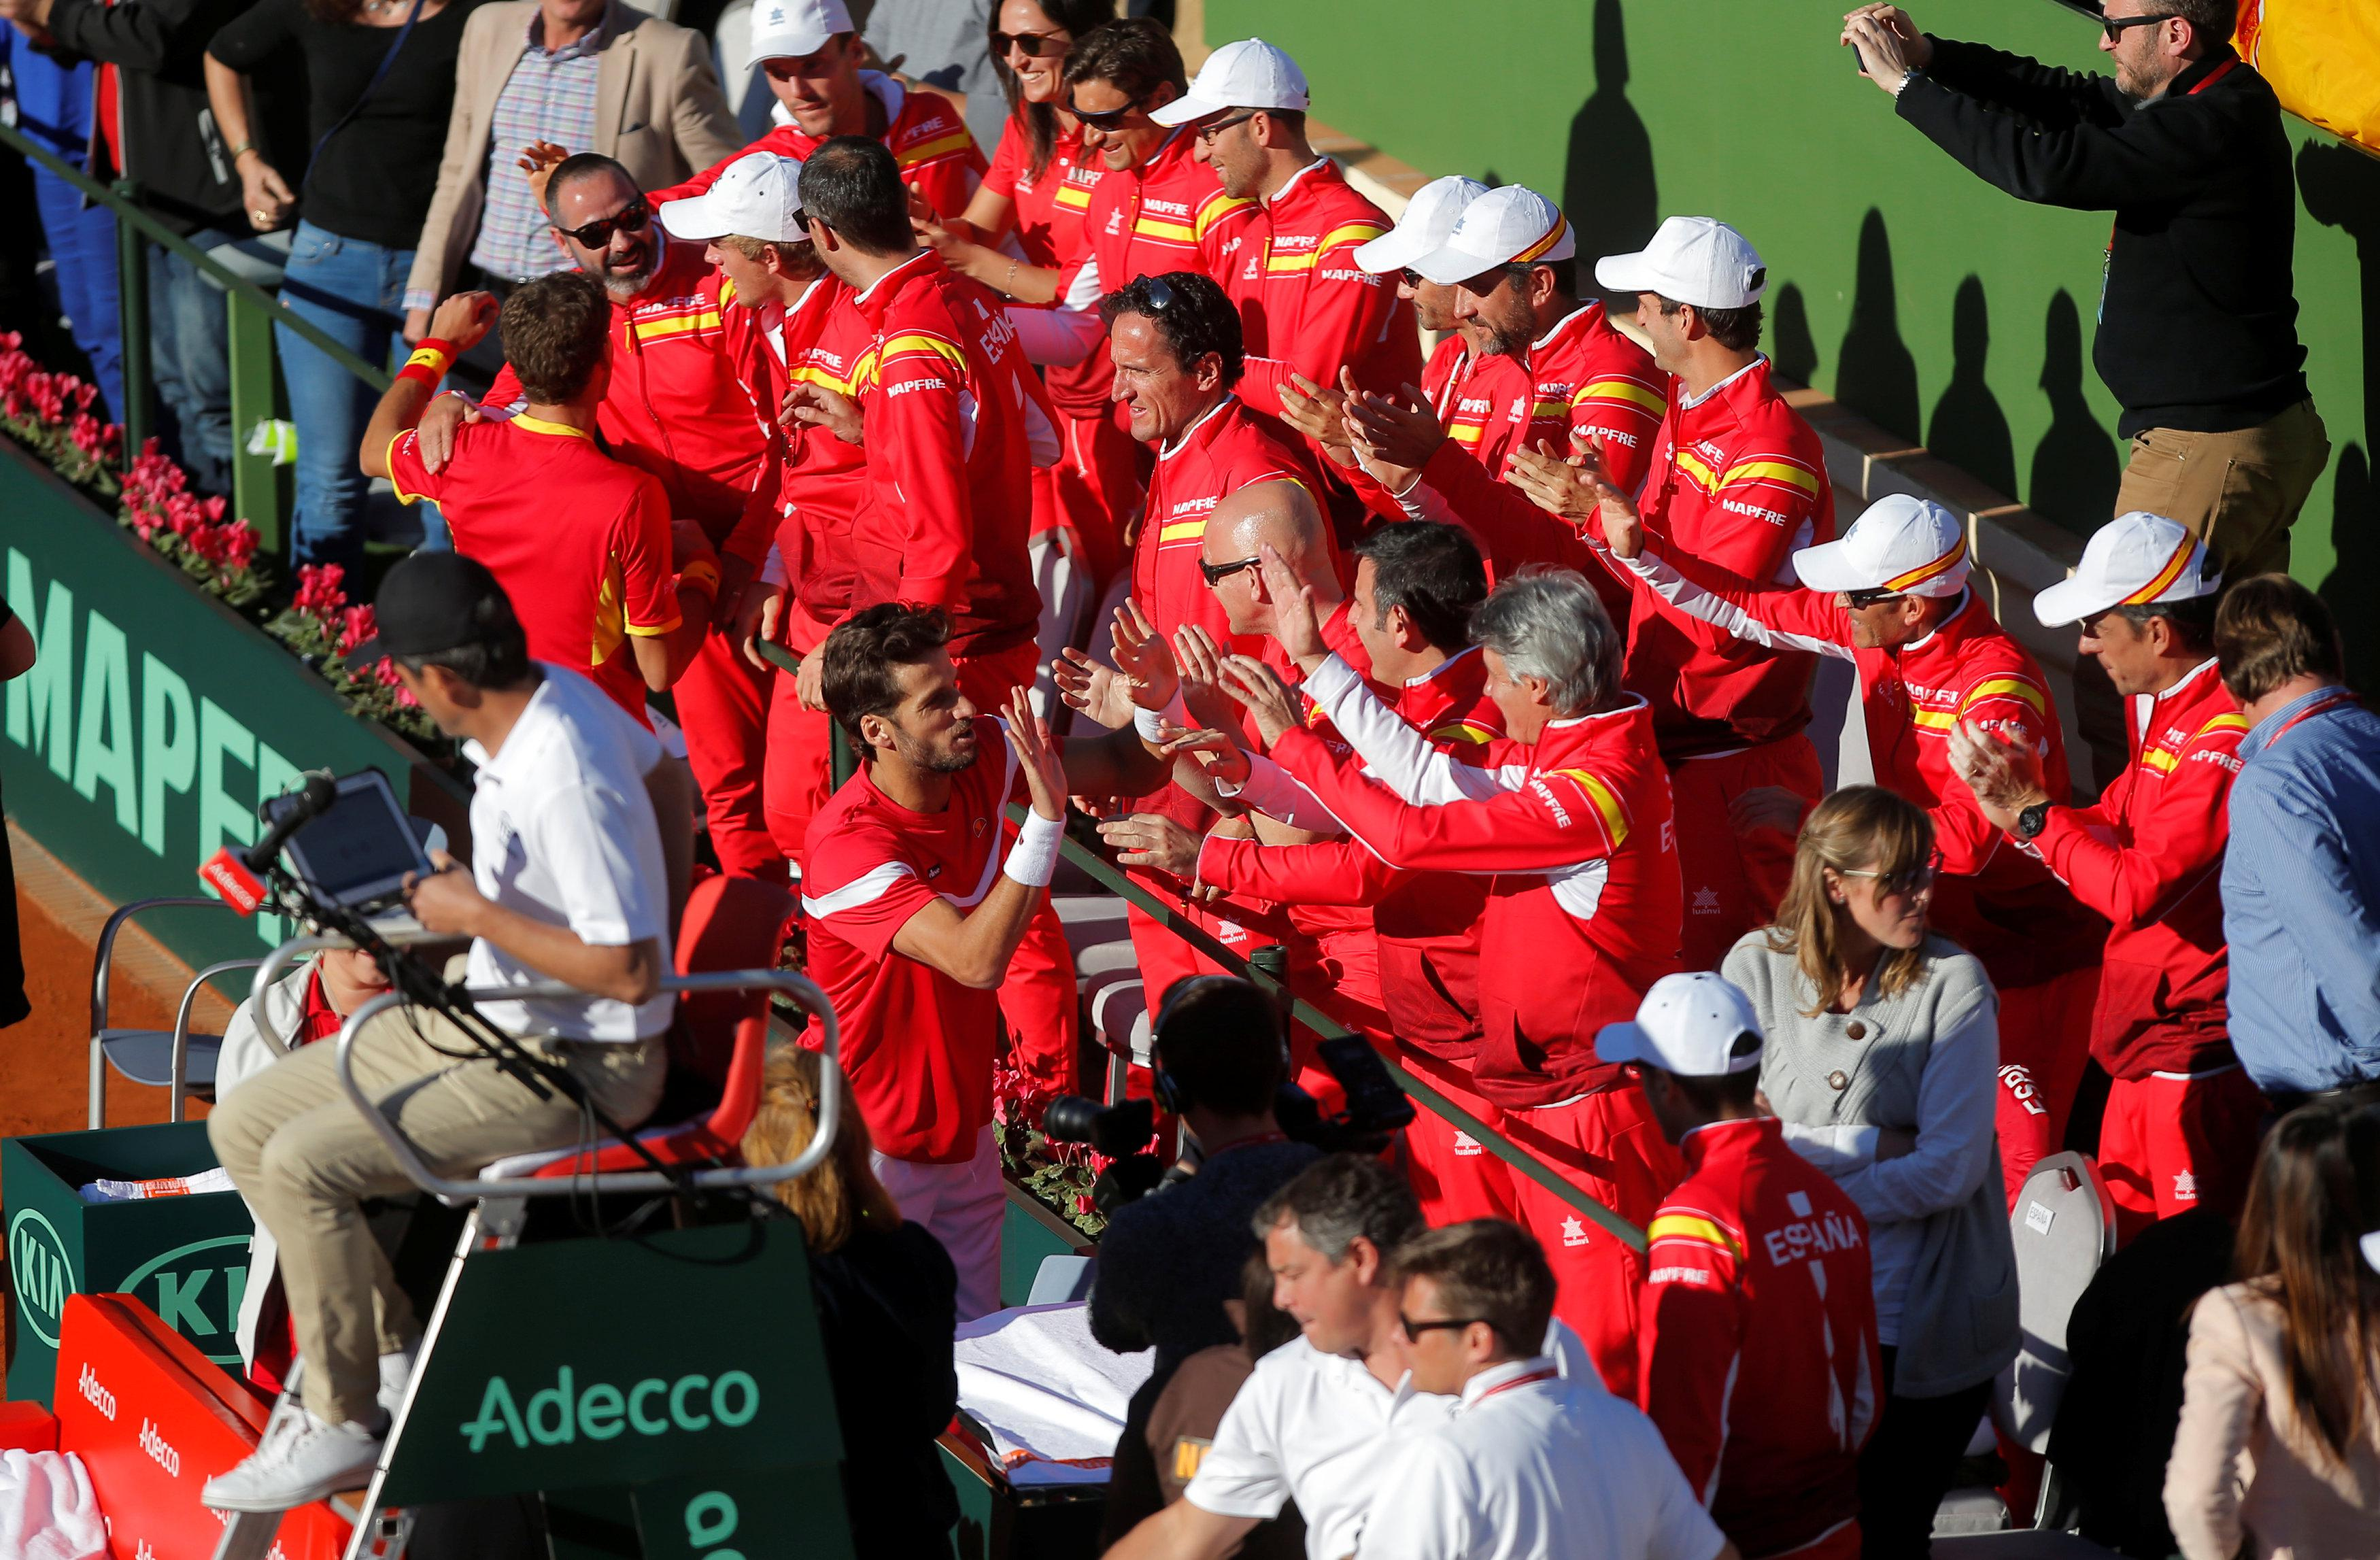 Pablo Carreno Busta and Feliciano Lopez celebrate with team mates after winning their doubles match.